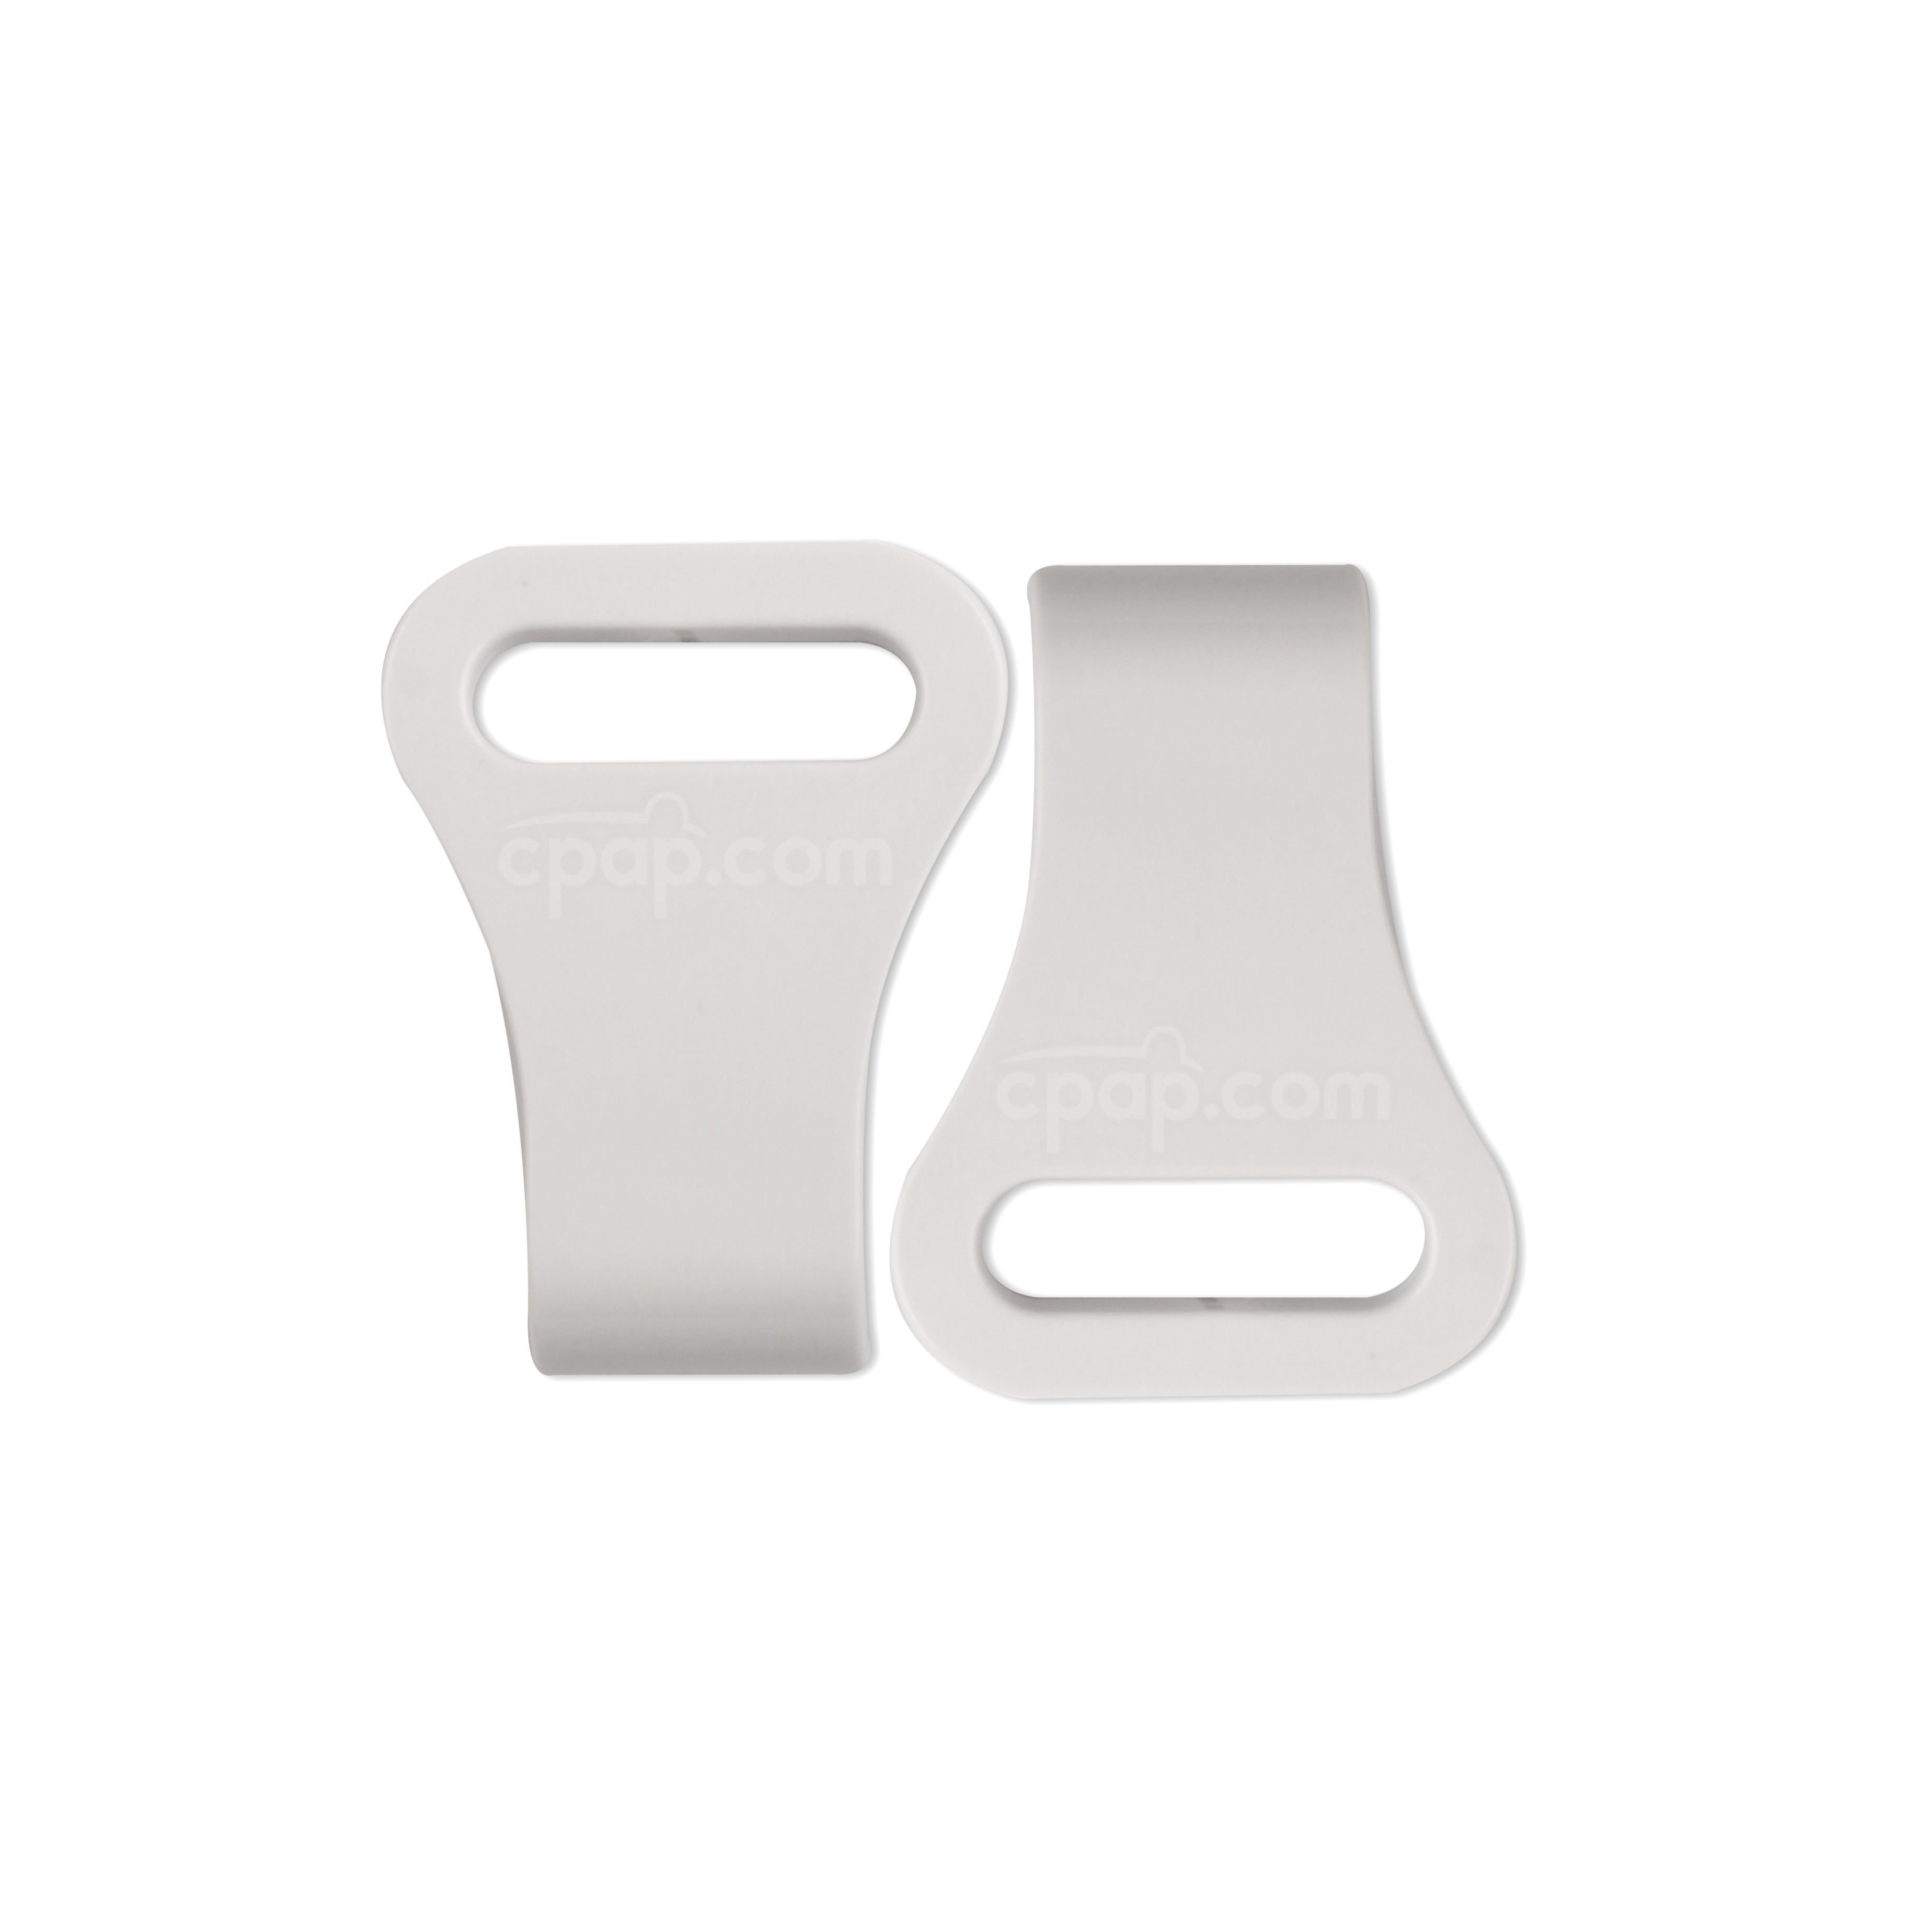 Headgear Clips for Pico Nasal CPAP Mask